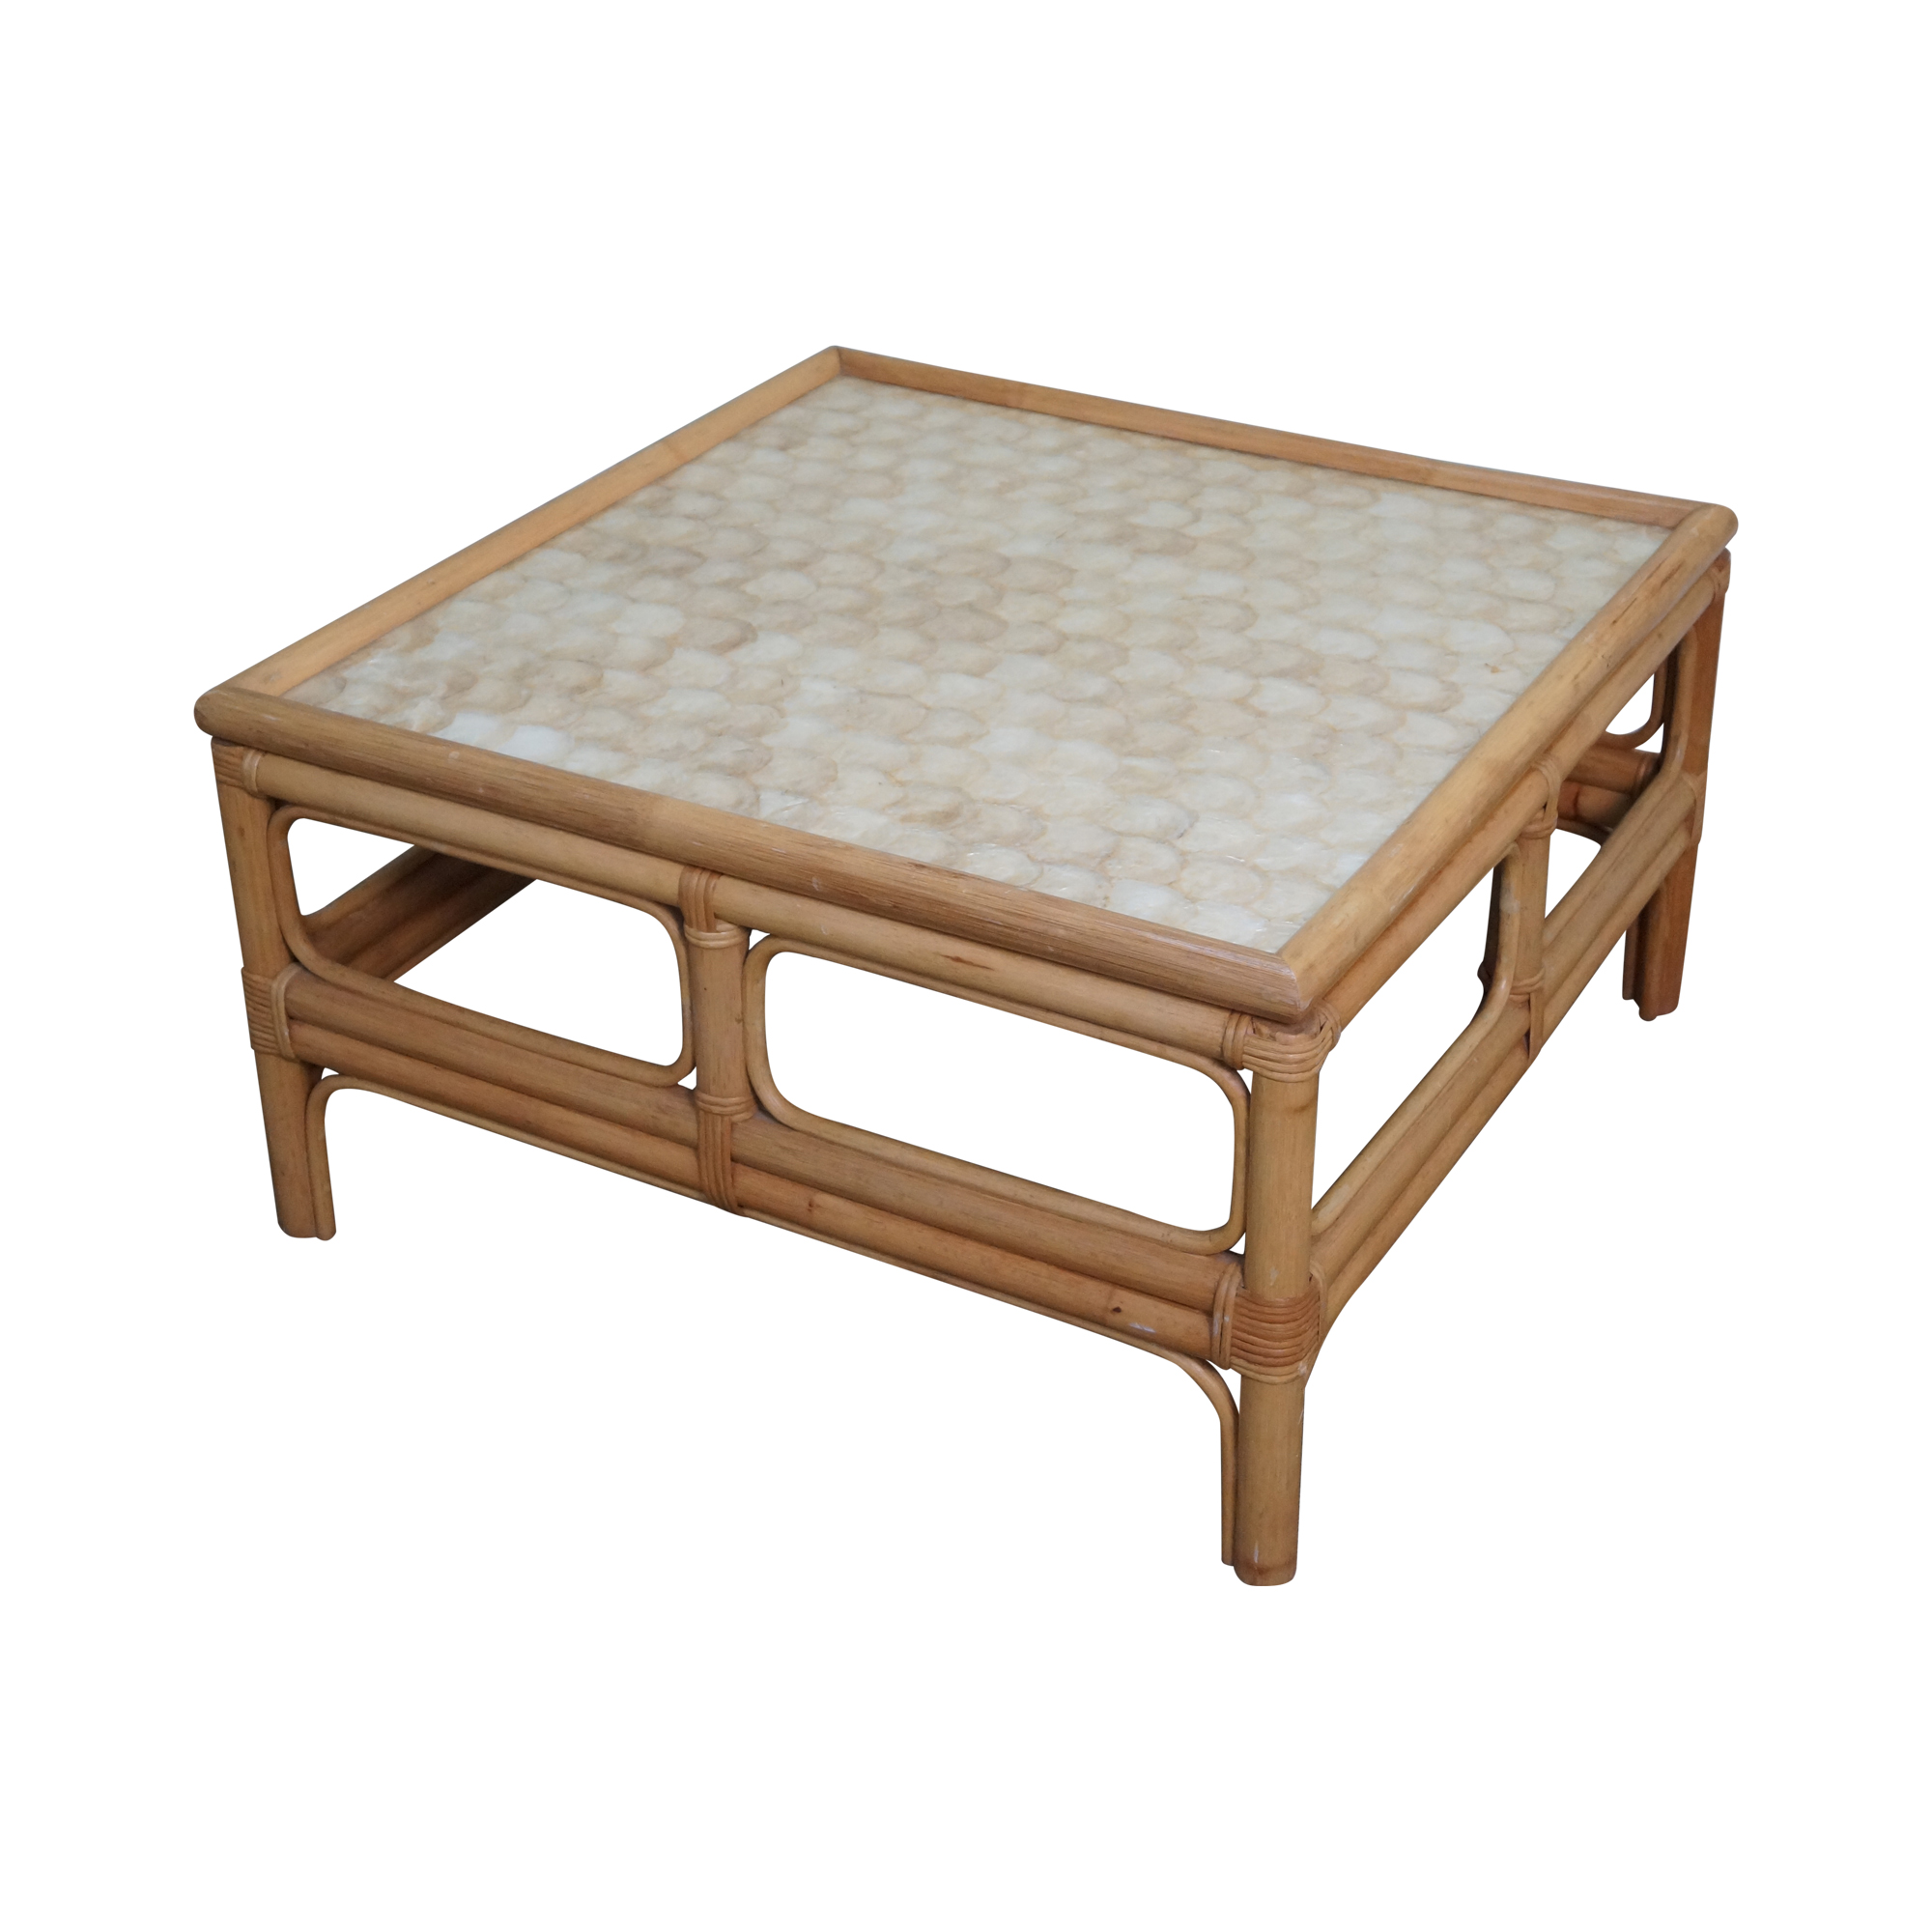 Long Bamboo Coffee Table: Vintage Rattan Bamboo Capiz Shell Top Coffee Table